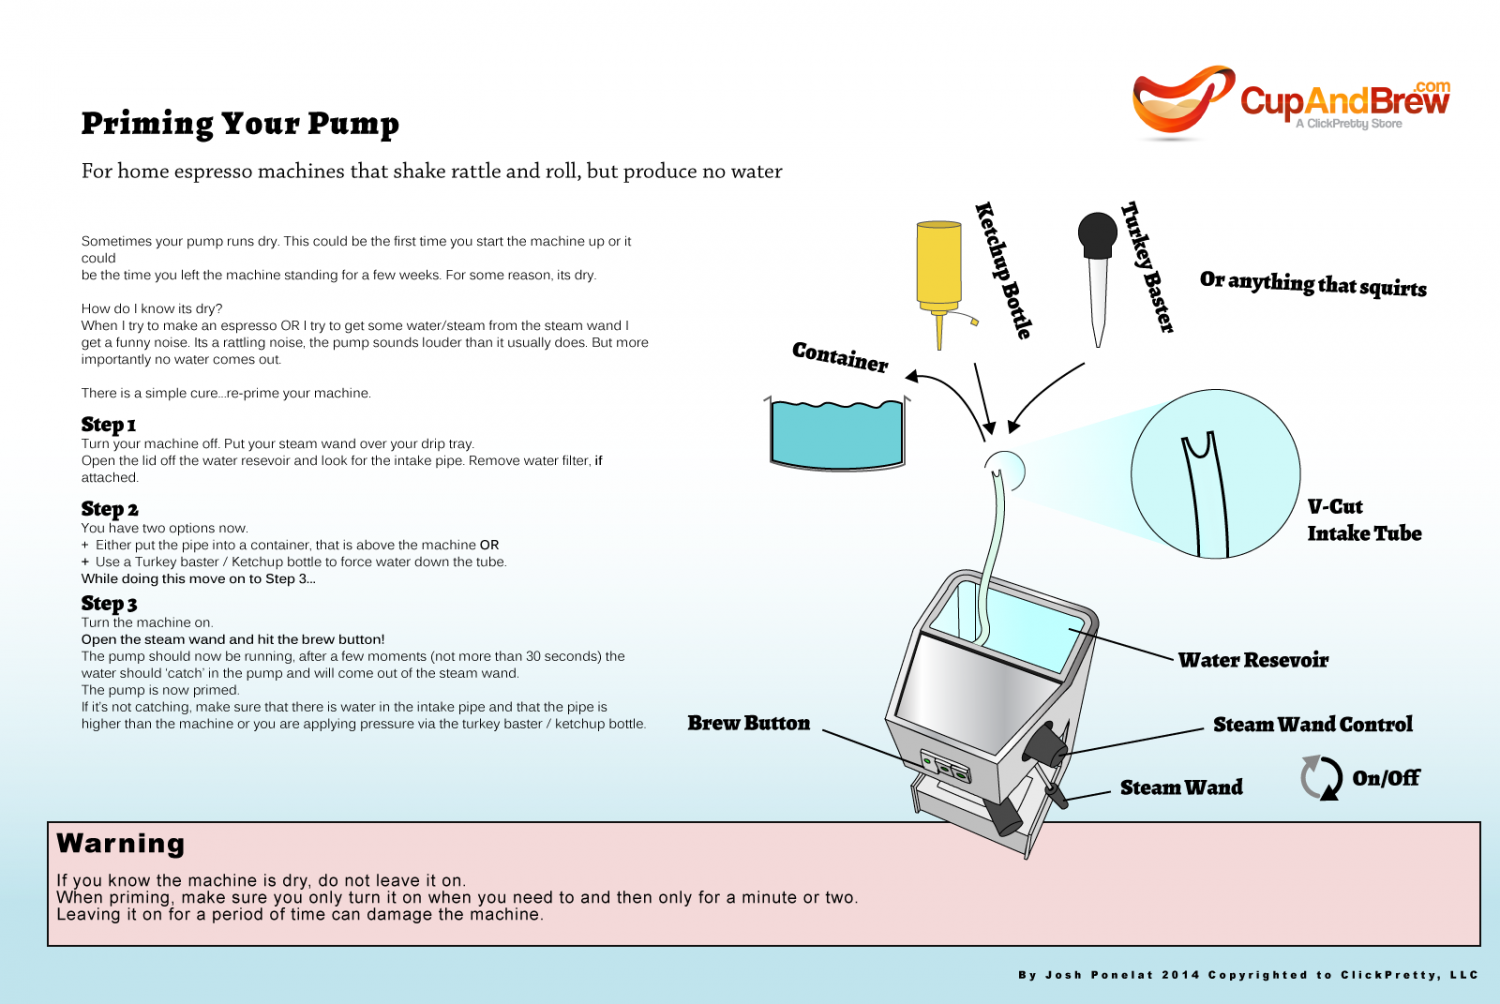 Priming Your Pump Infographic